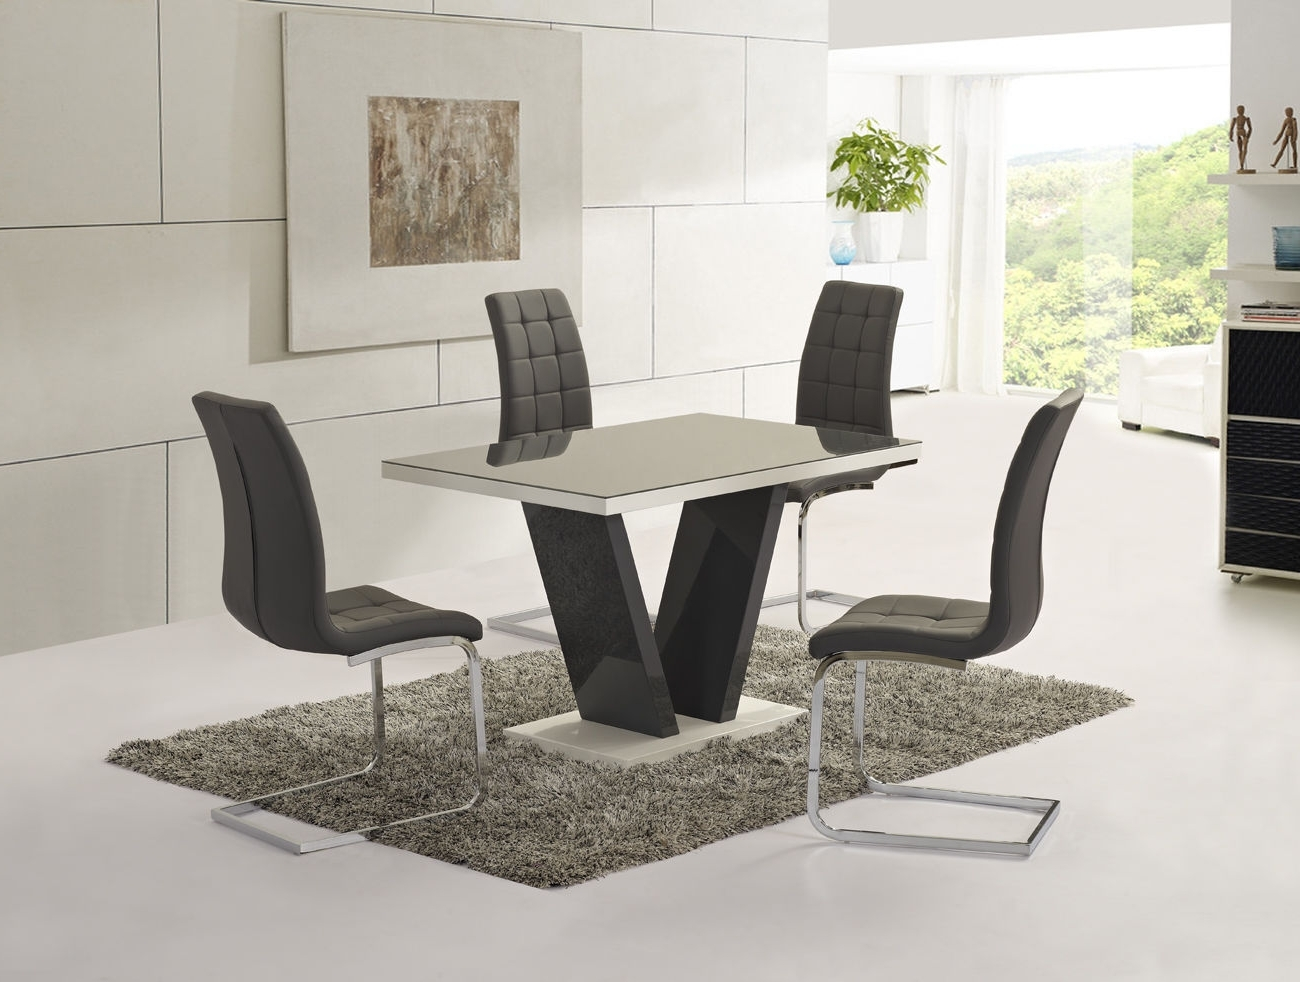 Preferred Gloss Dining Tables And Chairs Intended For Ga Vico Gloss Grey Glass Top Designer 160Cm Dining Set – 4 6 Grey (View 22 of 25)